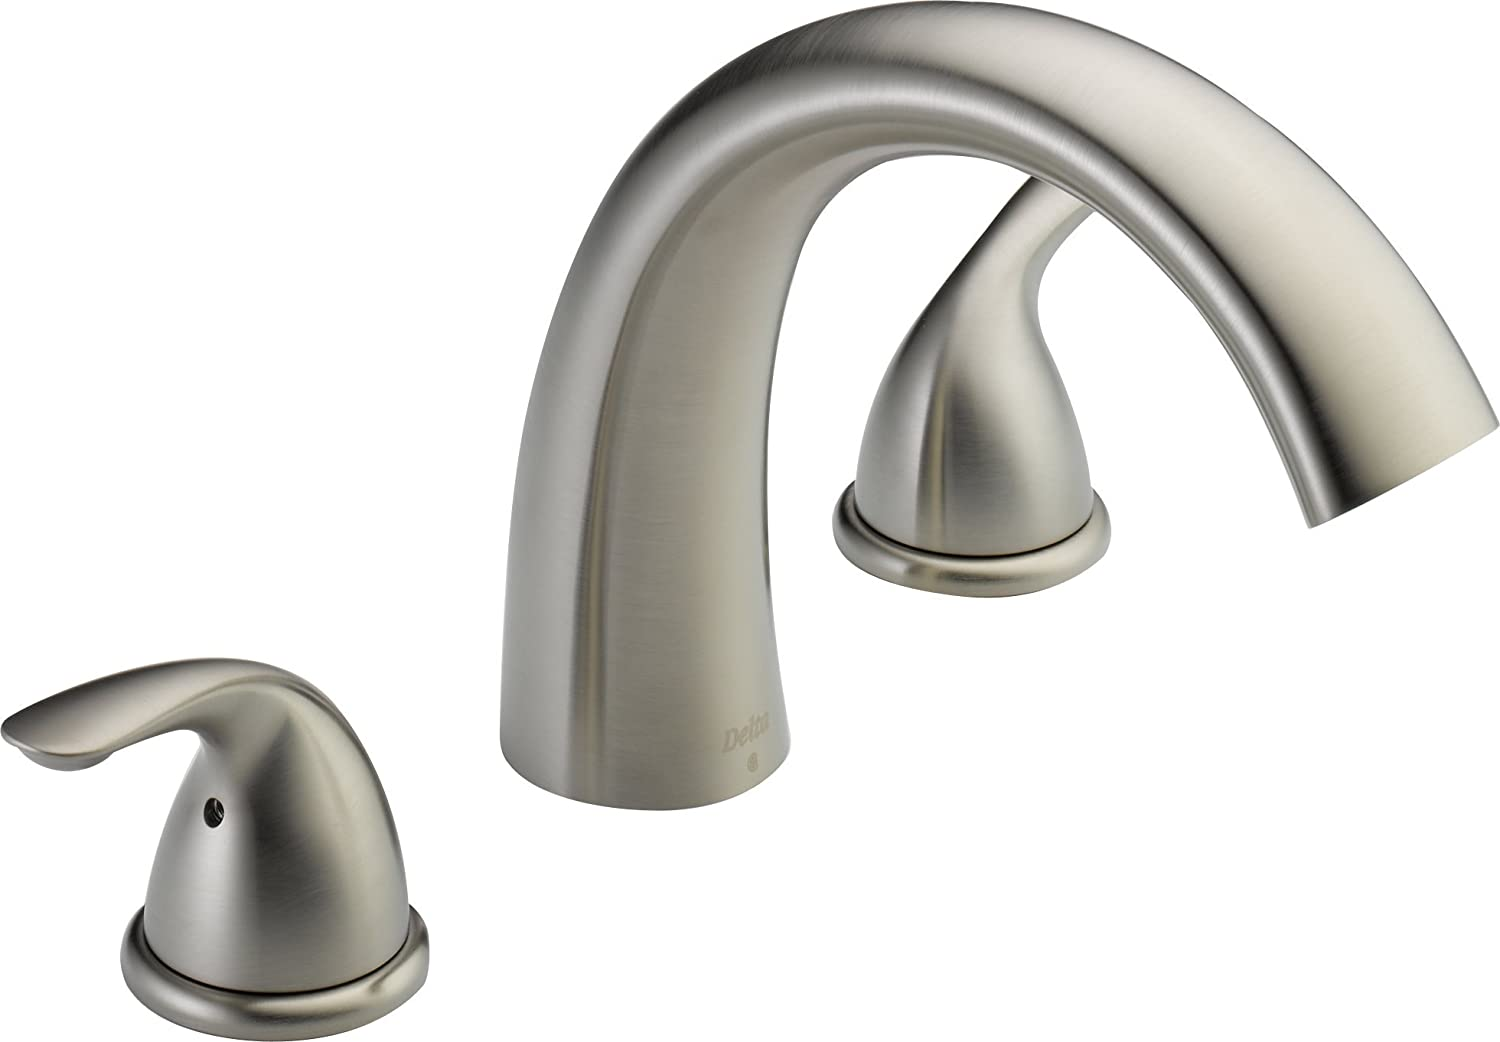 Delta T2705 Roman Tub Trim, Stainless (Valve sold separately) - Tub ...